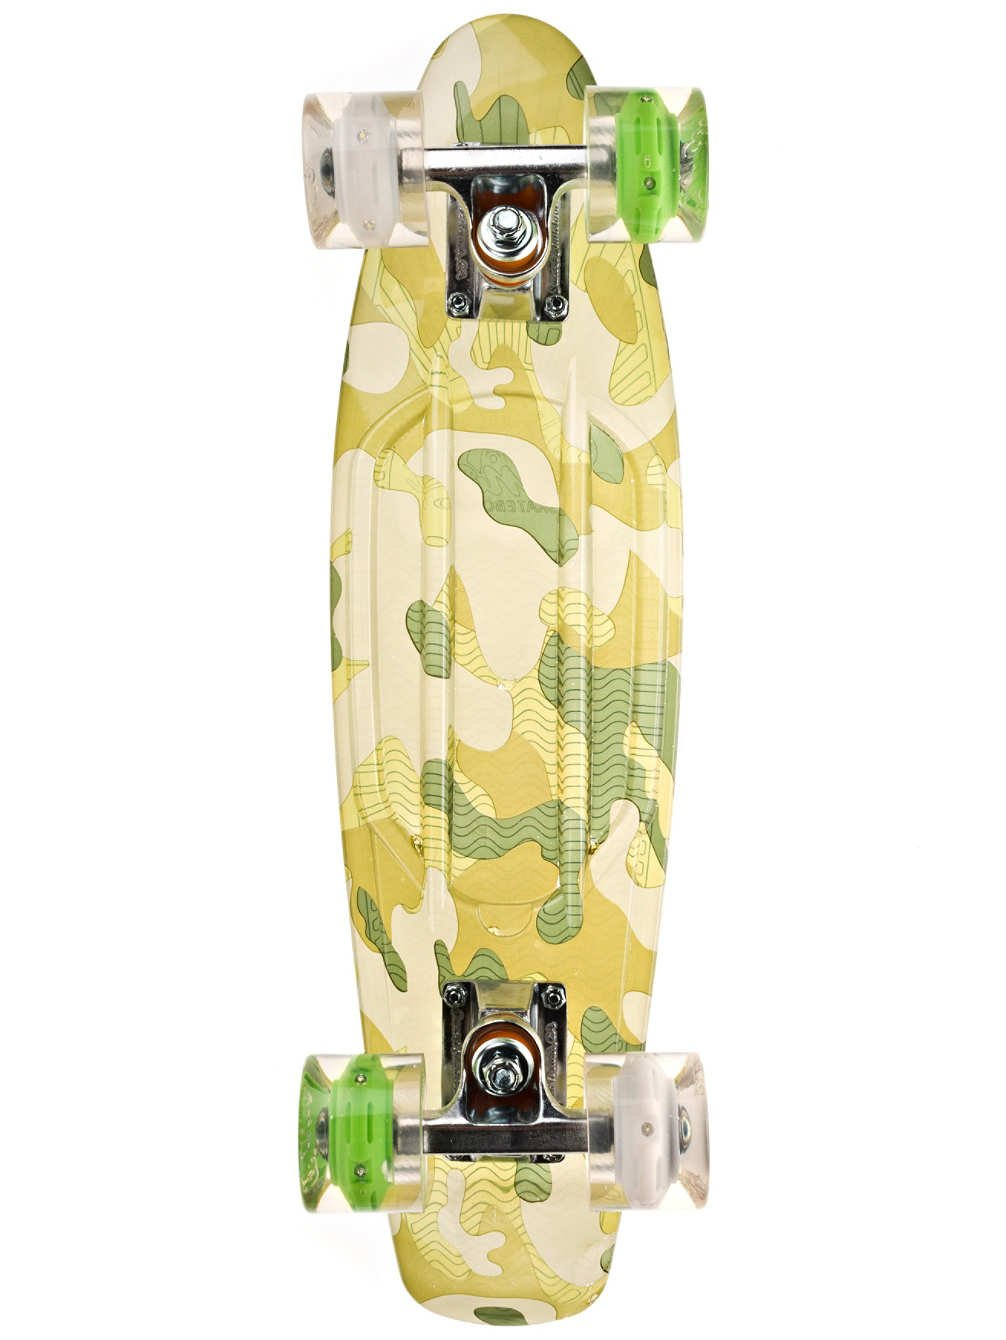 Sunset Skateboards Camo Complete Skateboard Deck with White/Green Wheels, 22-Inch, Green Camo by Sunset Skateboards